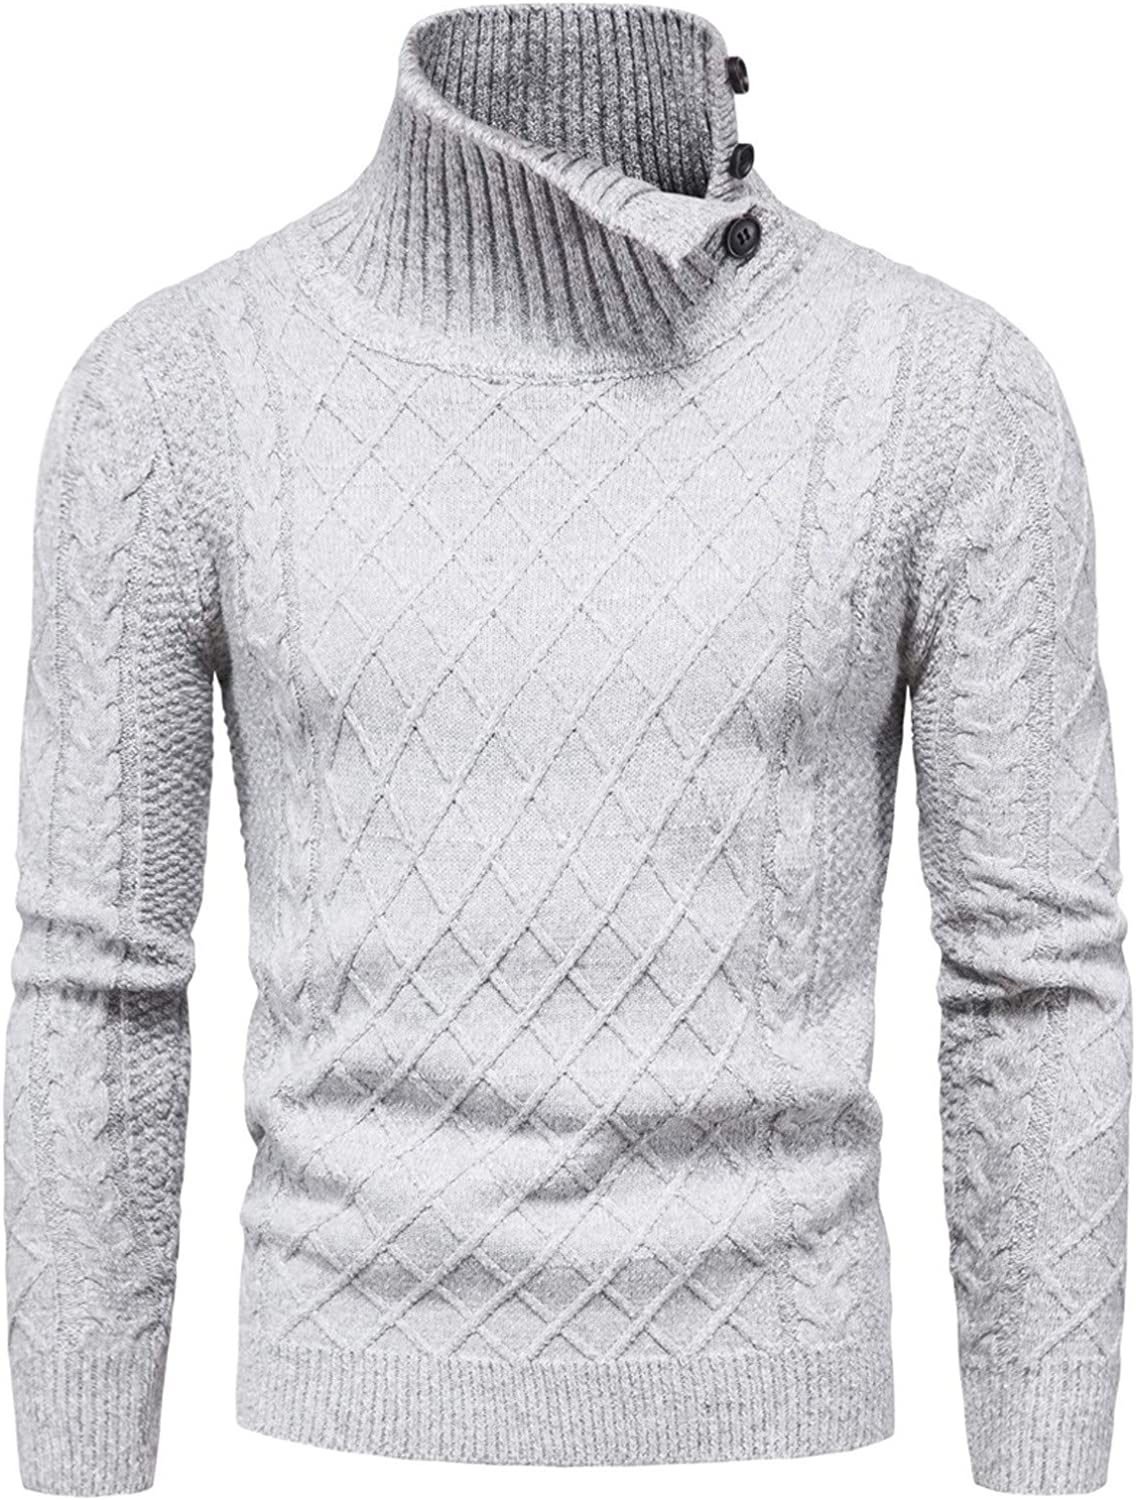 ZSBAYU Men's Button Turtleneck Pullover Sweaters Fashion Casual Cotton Blend Long Sleeve Thermal Sweatershirt Jumpers